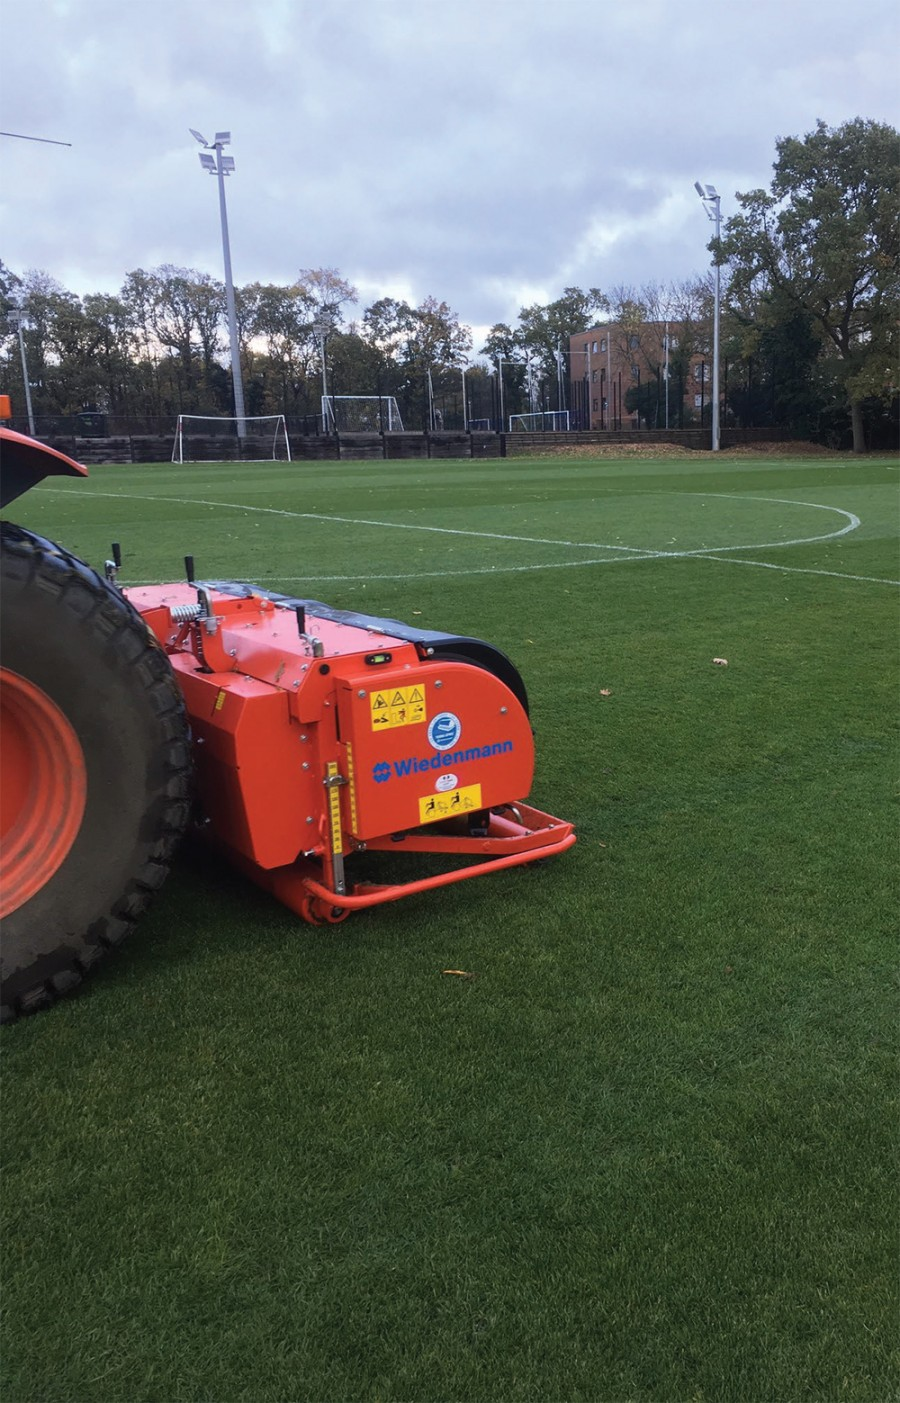 Under-pressure turf professionals look to Wiedenmann for fast accurate aeration